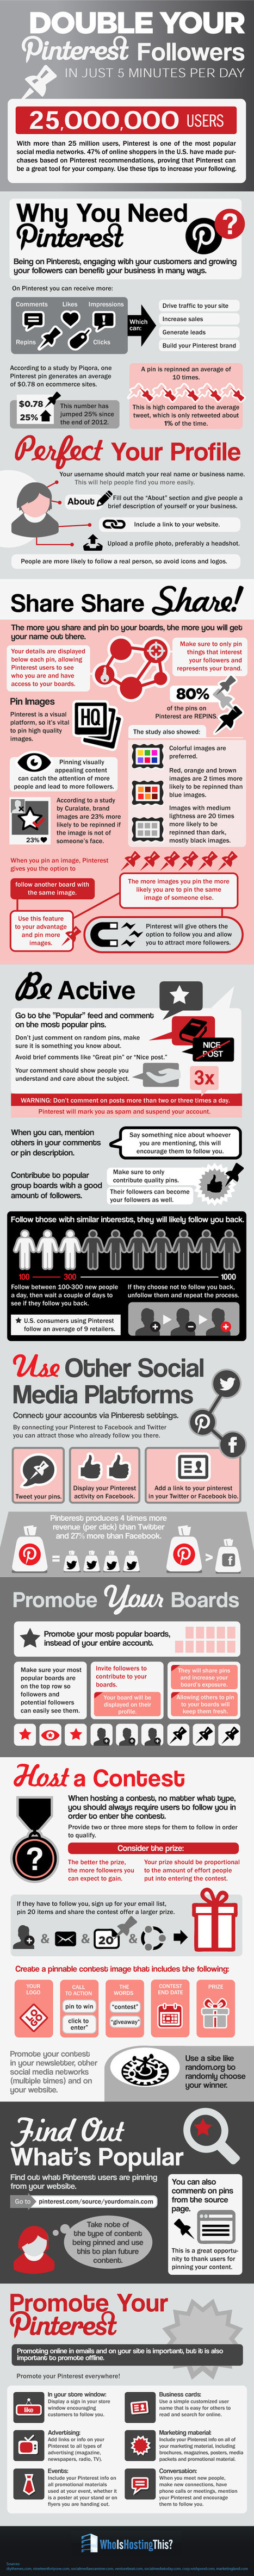 Double Pinterest Followers Organically In Just 5 Minutes A Day (Infographic) - Business 2 Community | Social Marketing, Public Relations & Branding | Scoop.it